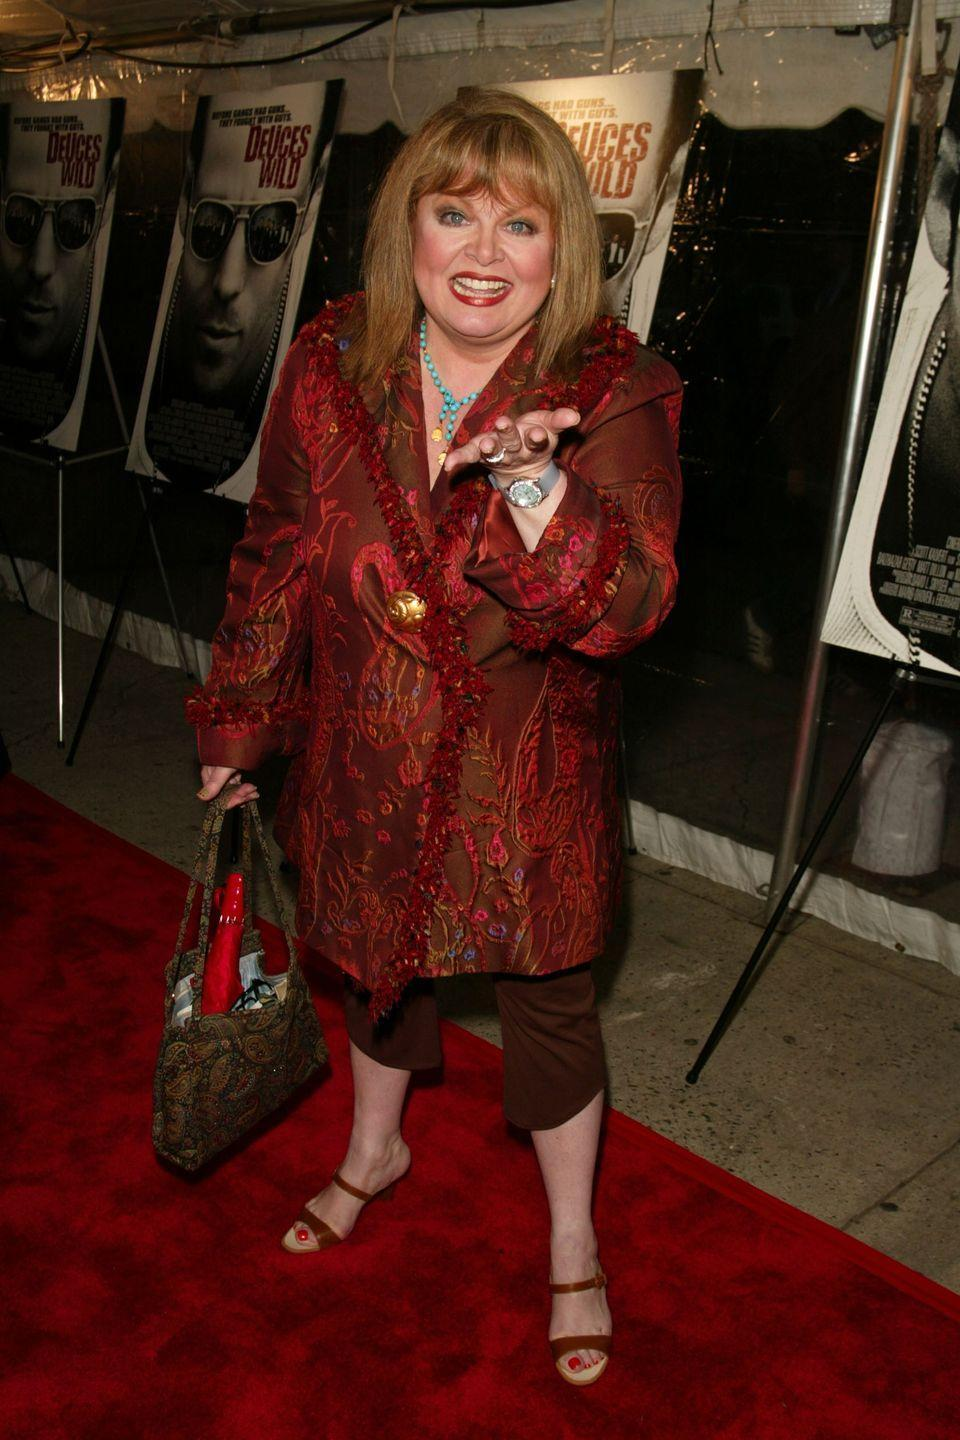 <p>America first got to know Sally Struthers for her role on <em>All In The Family, </em>where she playedGloria Bunker. Afterward, she moved on to theater. The actress bopped around television, appearing on various shows, until she filled the role as Lorelai and Rory's big-hearted neighbor, Babette, on <em>Gilmore Girls.</em></p>